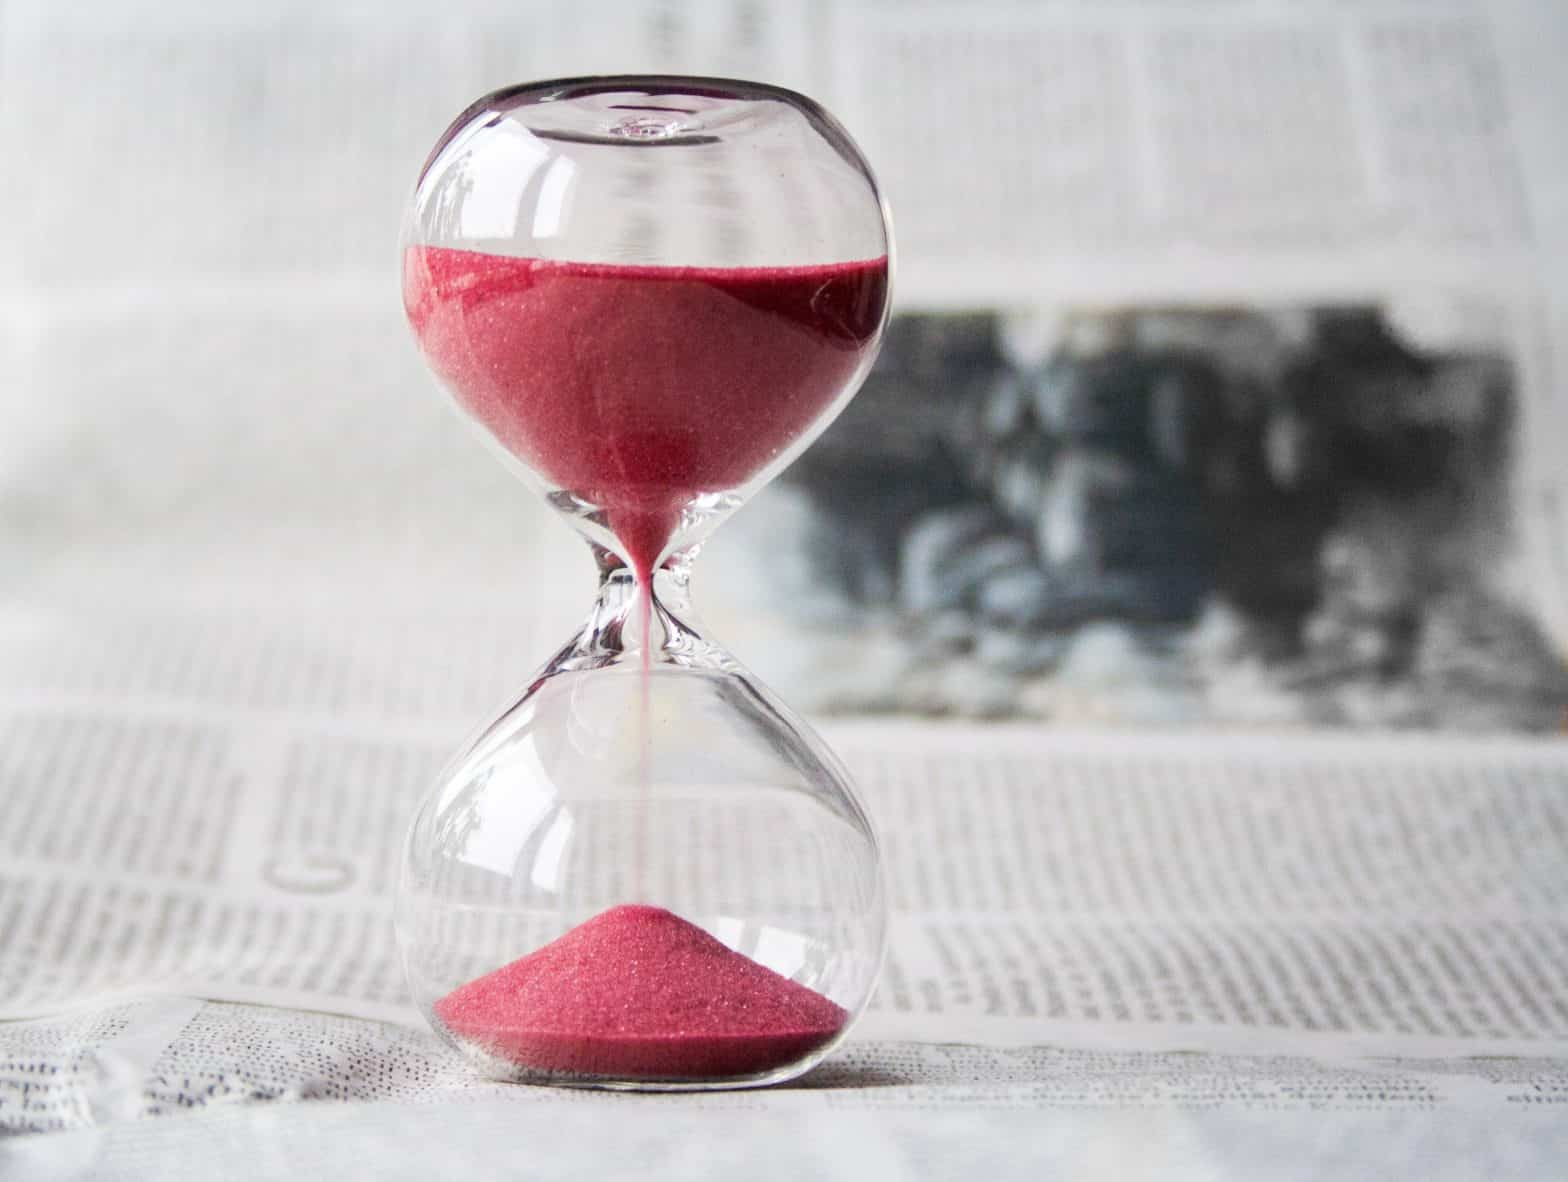 An hourglass running out of time as a deadline approaches.